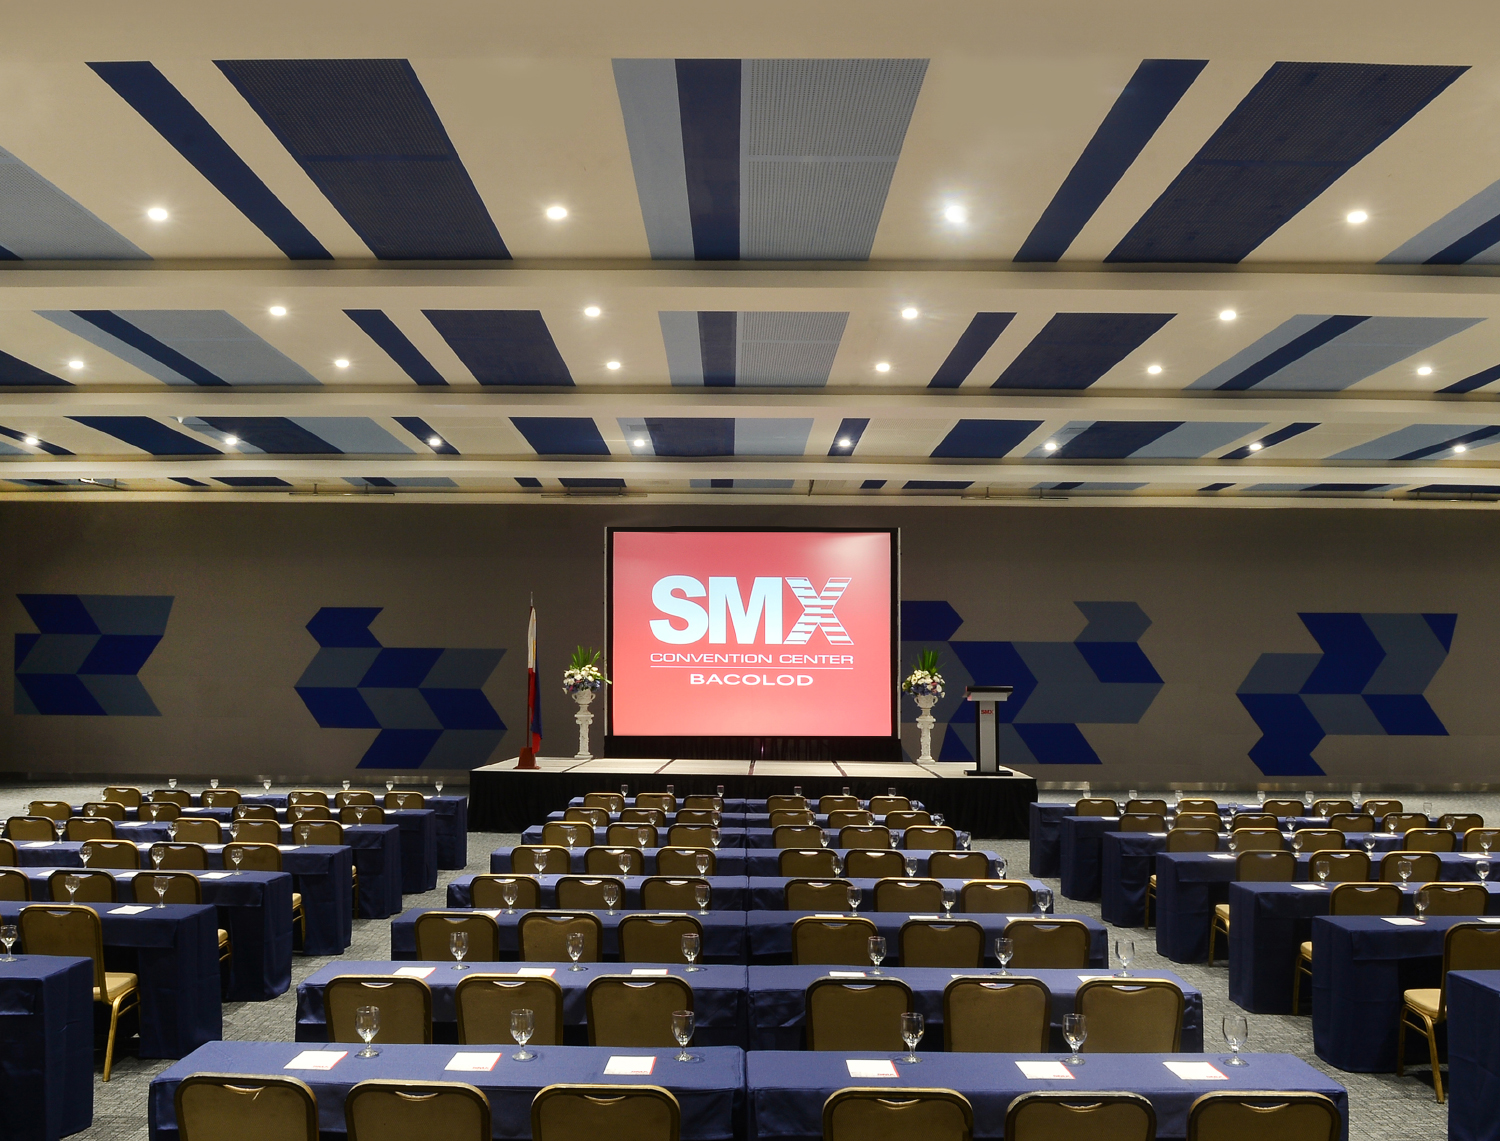 SMX Convention Center Bacolod